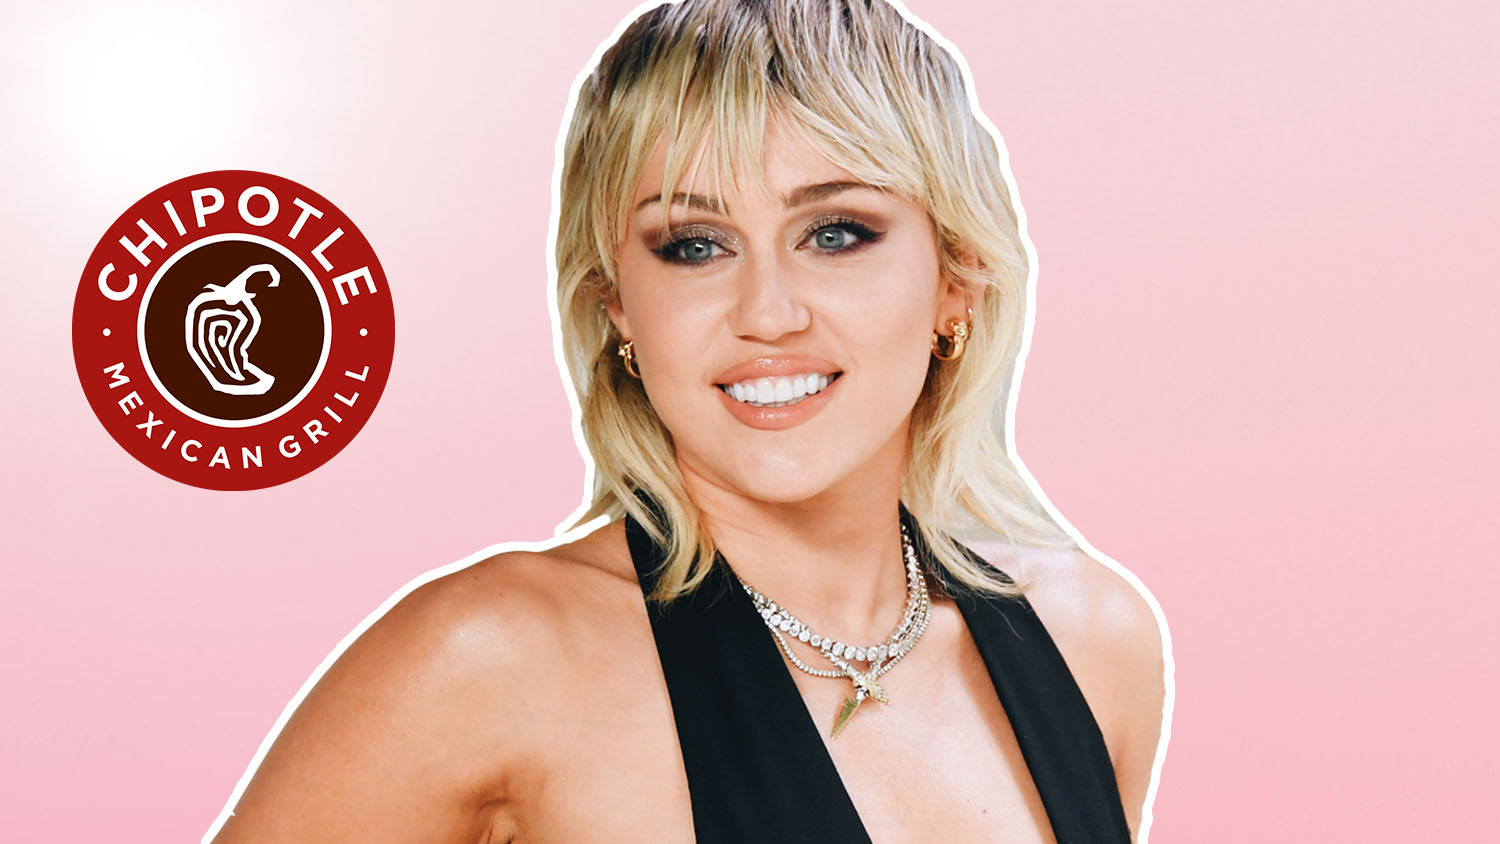 Chipotle's New Vegan Burrito: 'Guac Is Extra But So Is Miley'